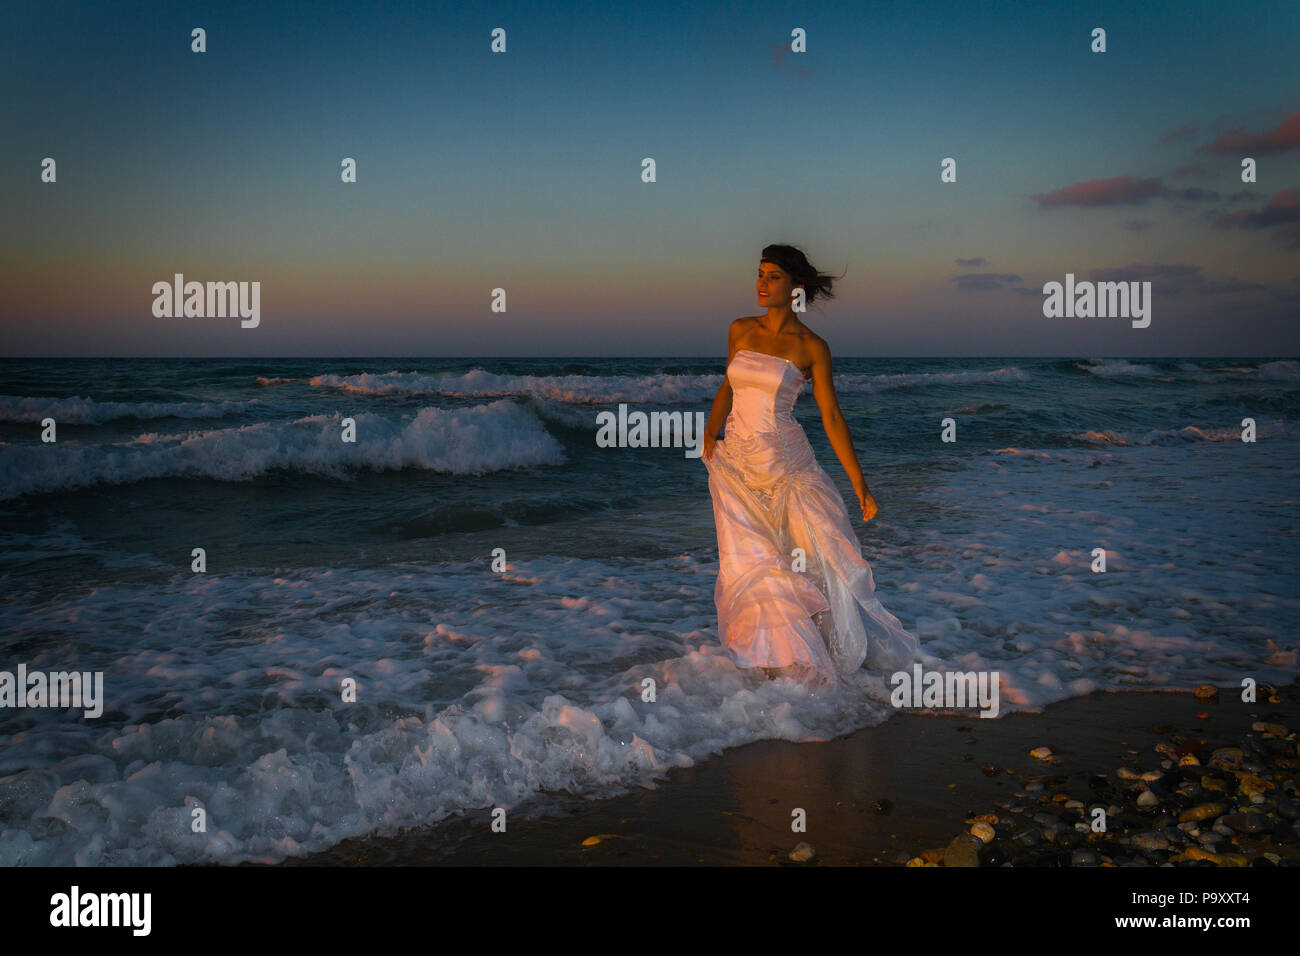 Woman in white dress, barefoot, feeling happy, alive and free in nature meditating at sandy misty beach breathing clean fresh ocean air at dusk. Summer holidays lifestyle concept - Stock Image